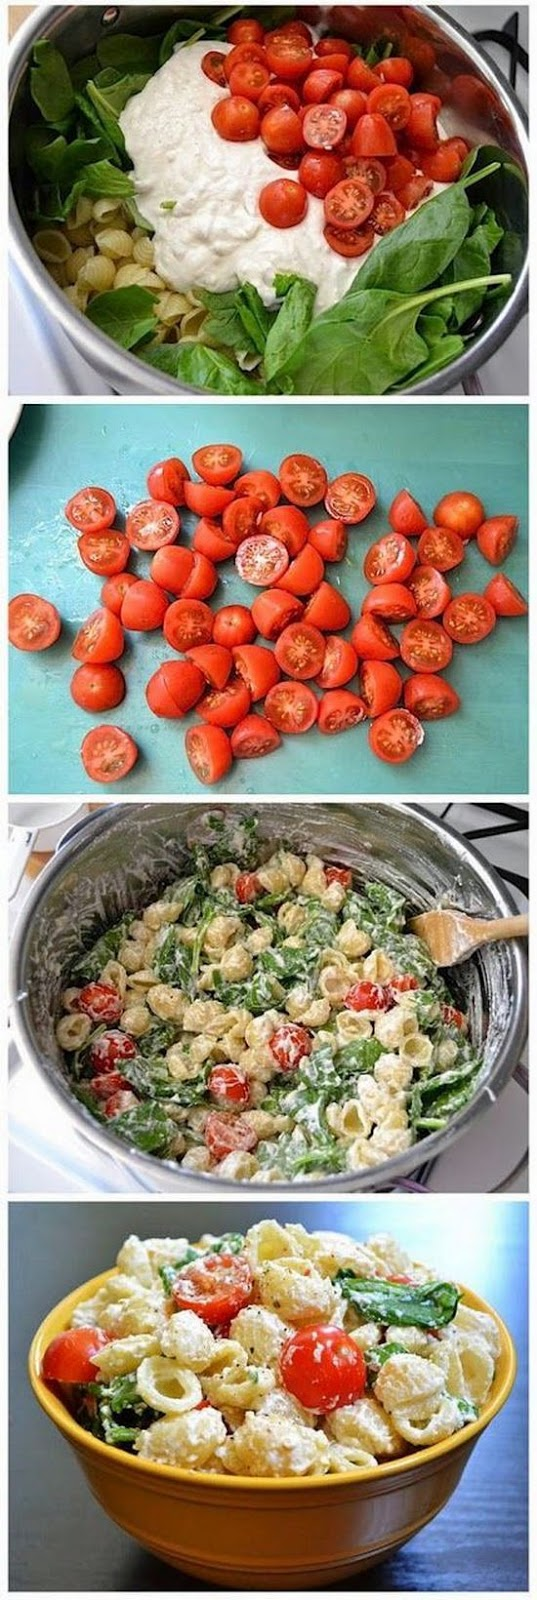 roasted garlic roasted garlic olive and tomato pasta salad pasta salad ...